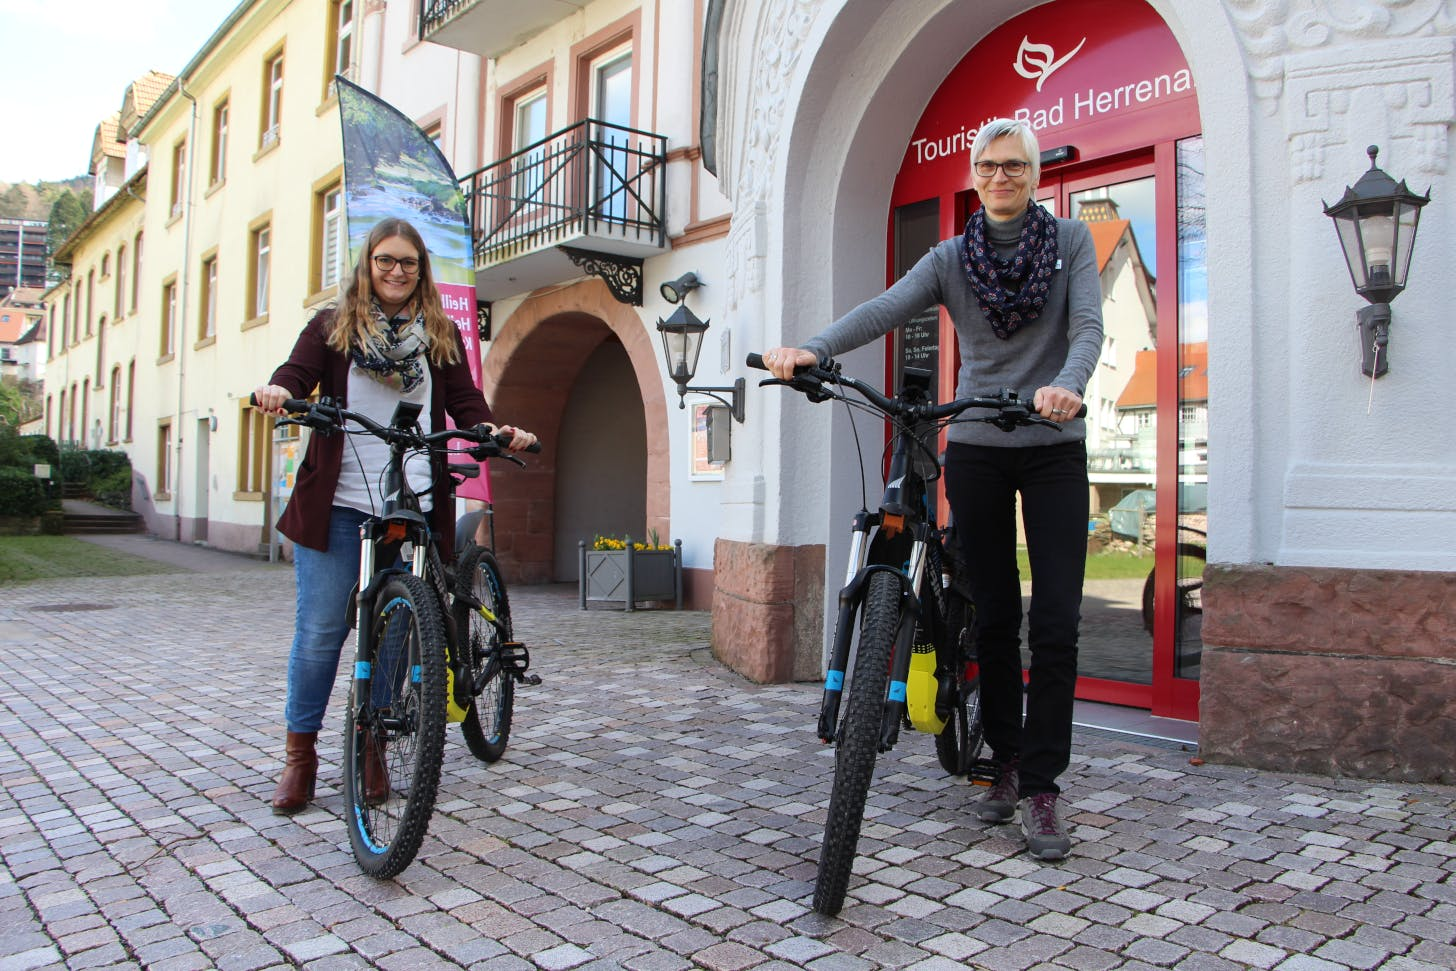 Der Frühling kann kommen: Julia Riegger (links) und Astrid von der Heide mit den neuen Pedelec-Mountainbikes der Tourist-Info Bad Herrenalb. ©Tourismus und Stadtmarketing Bad Herrenalb